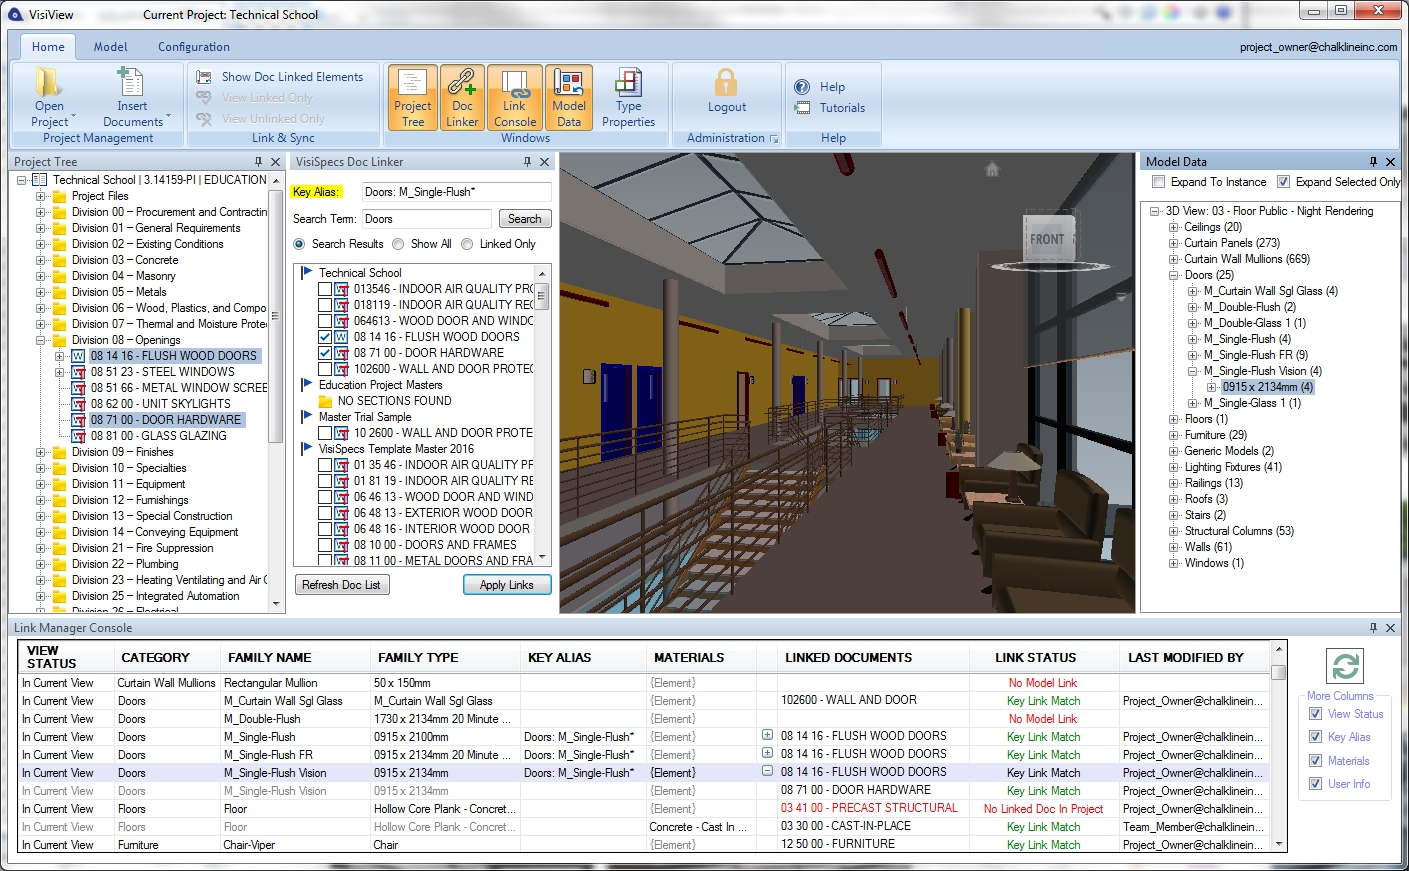 VisiView provides a visual view of the model and data for linking, editing, coordination, and verification of the entire project.